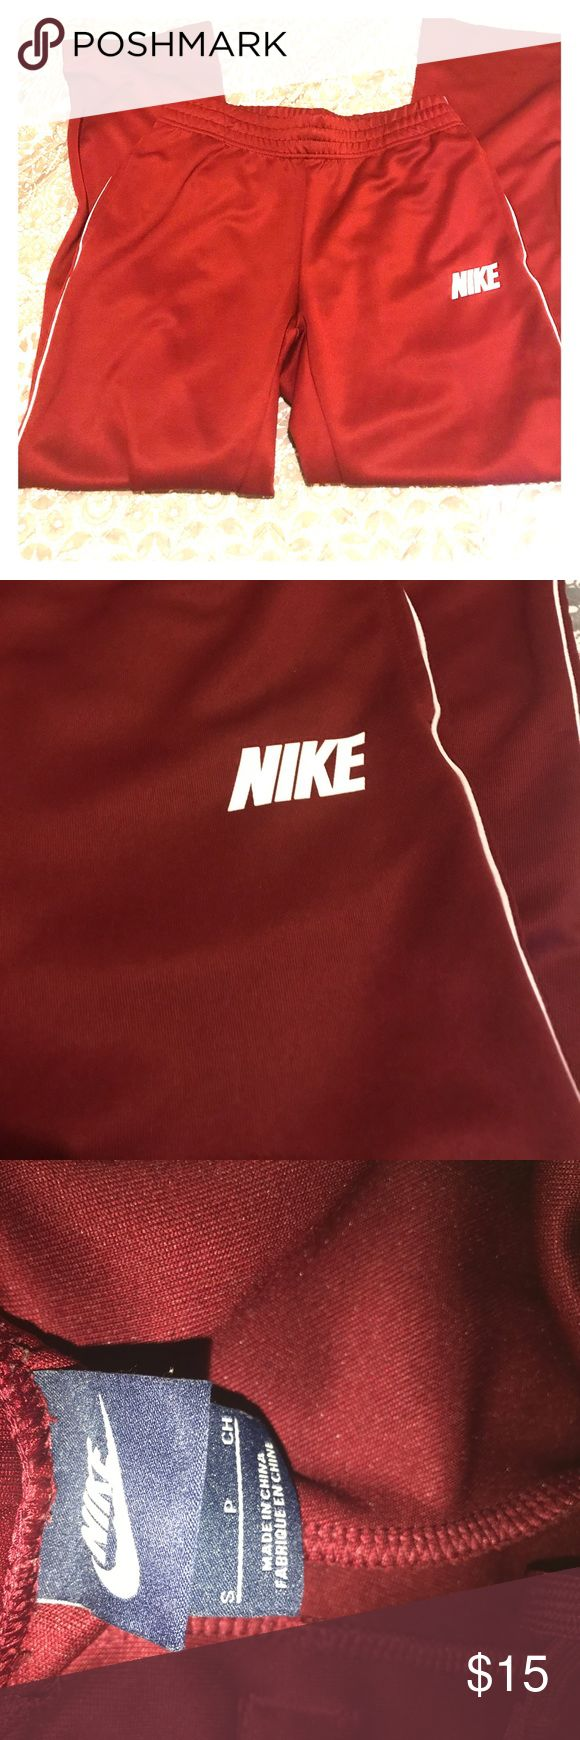 Nike jogger pants A dark red/ wine color jogging pants! The material is so soft & flexible. Has pockets on the sides & one on the back. These pants are for both man & women. It has a loose fit on the ankles. Also has adjustable waist band. Nike Pants Track Pants & Joggers